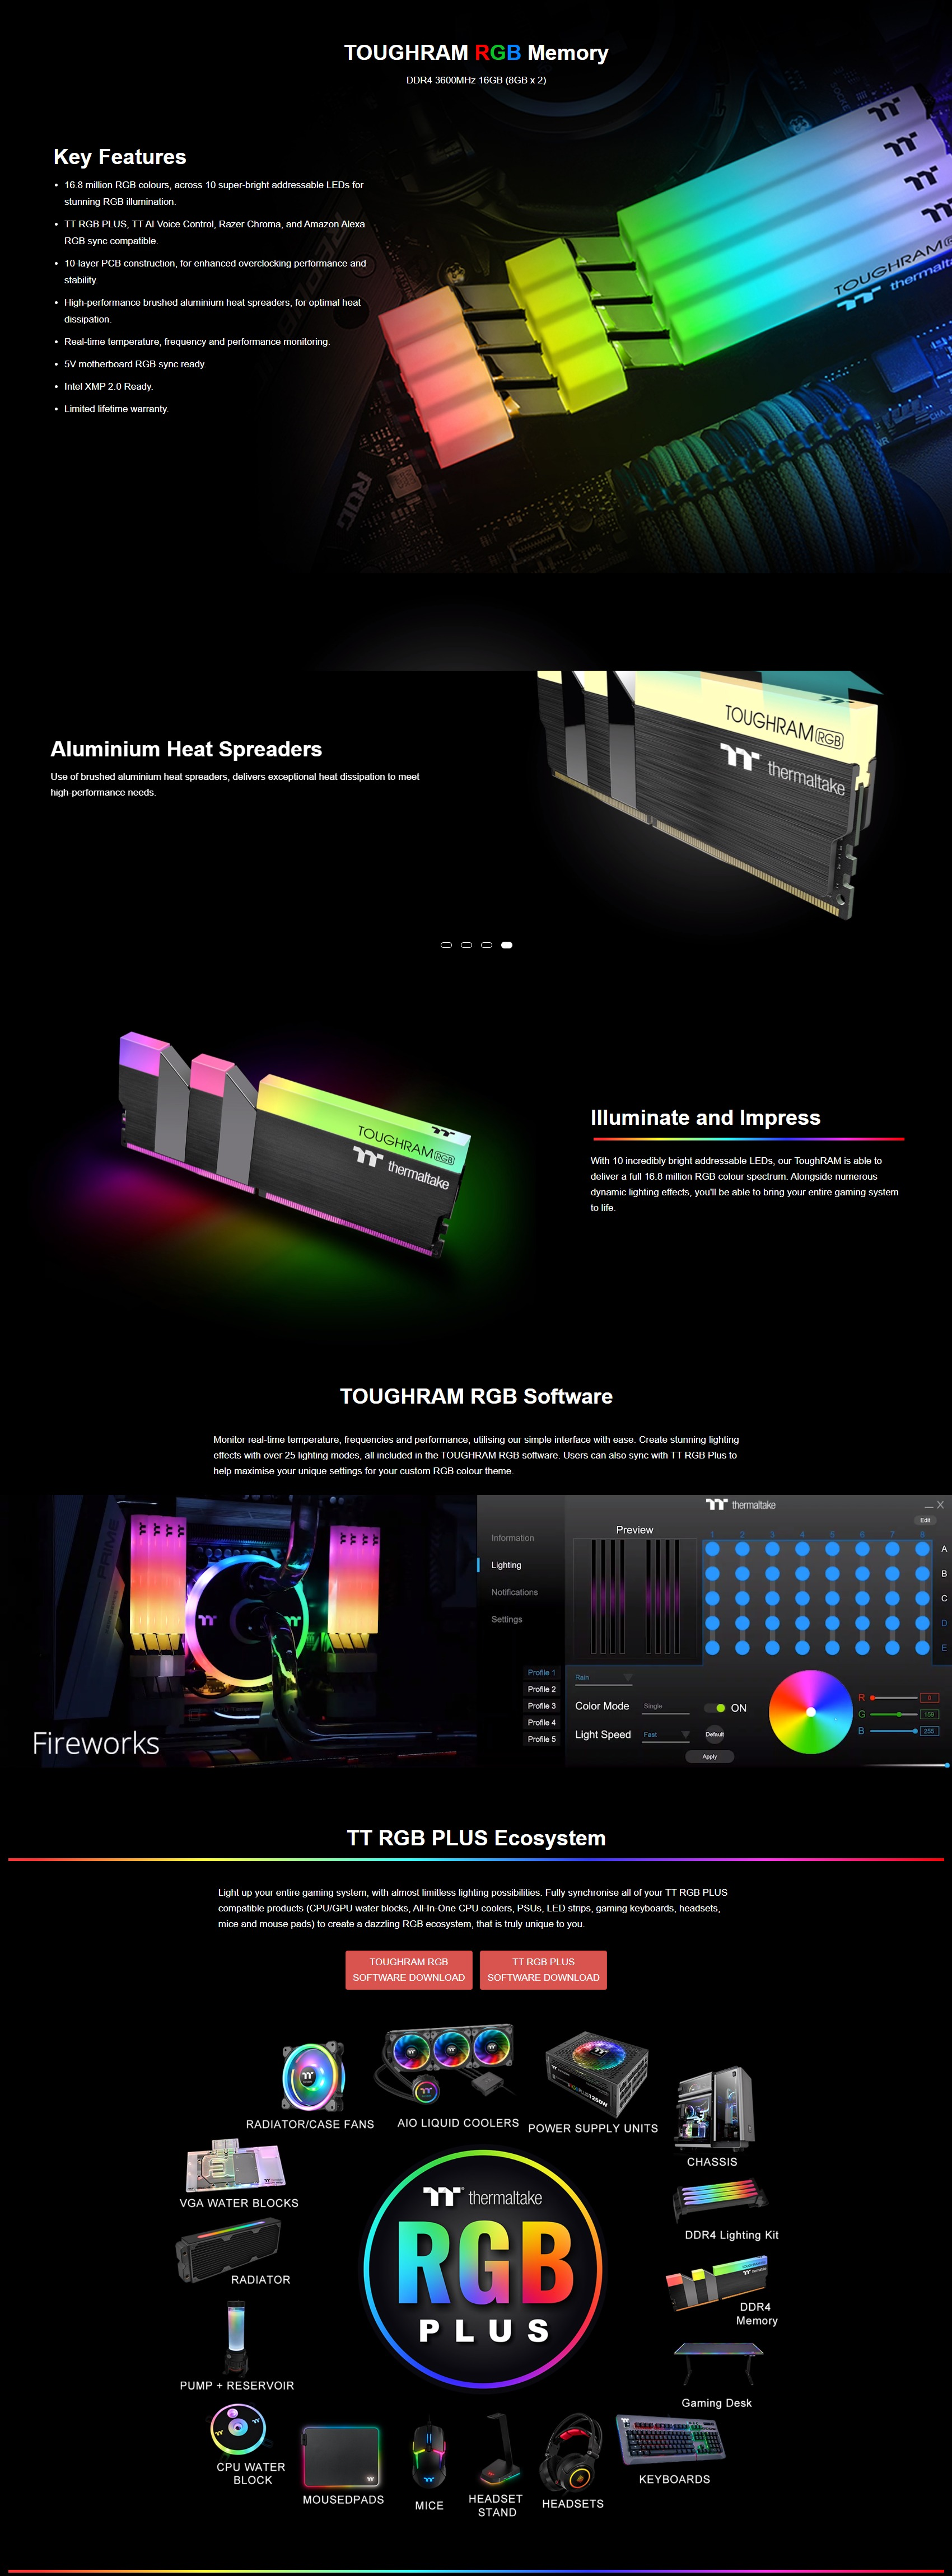 A large marketing image providing additional information about the product Thermaltake 16GB (2x8GB) ToughRAM RGB C19 4000MHz - Additional alt info not provided